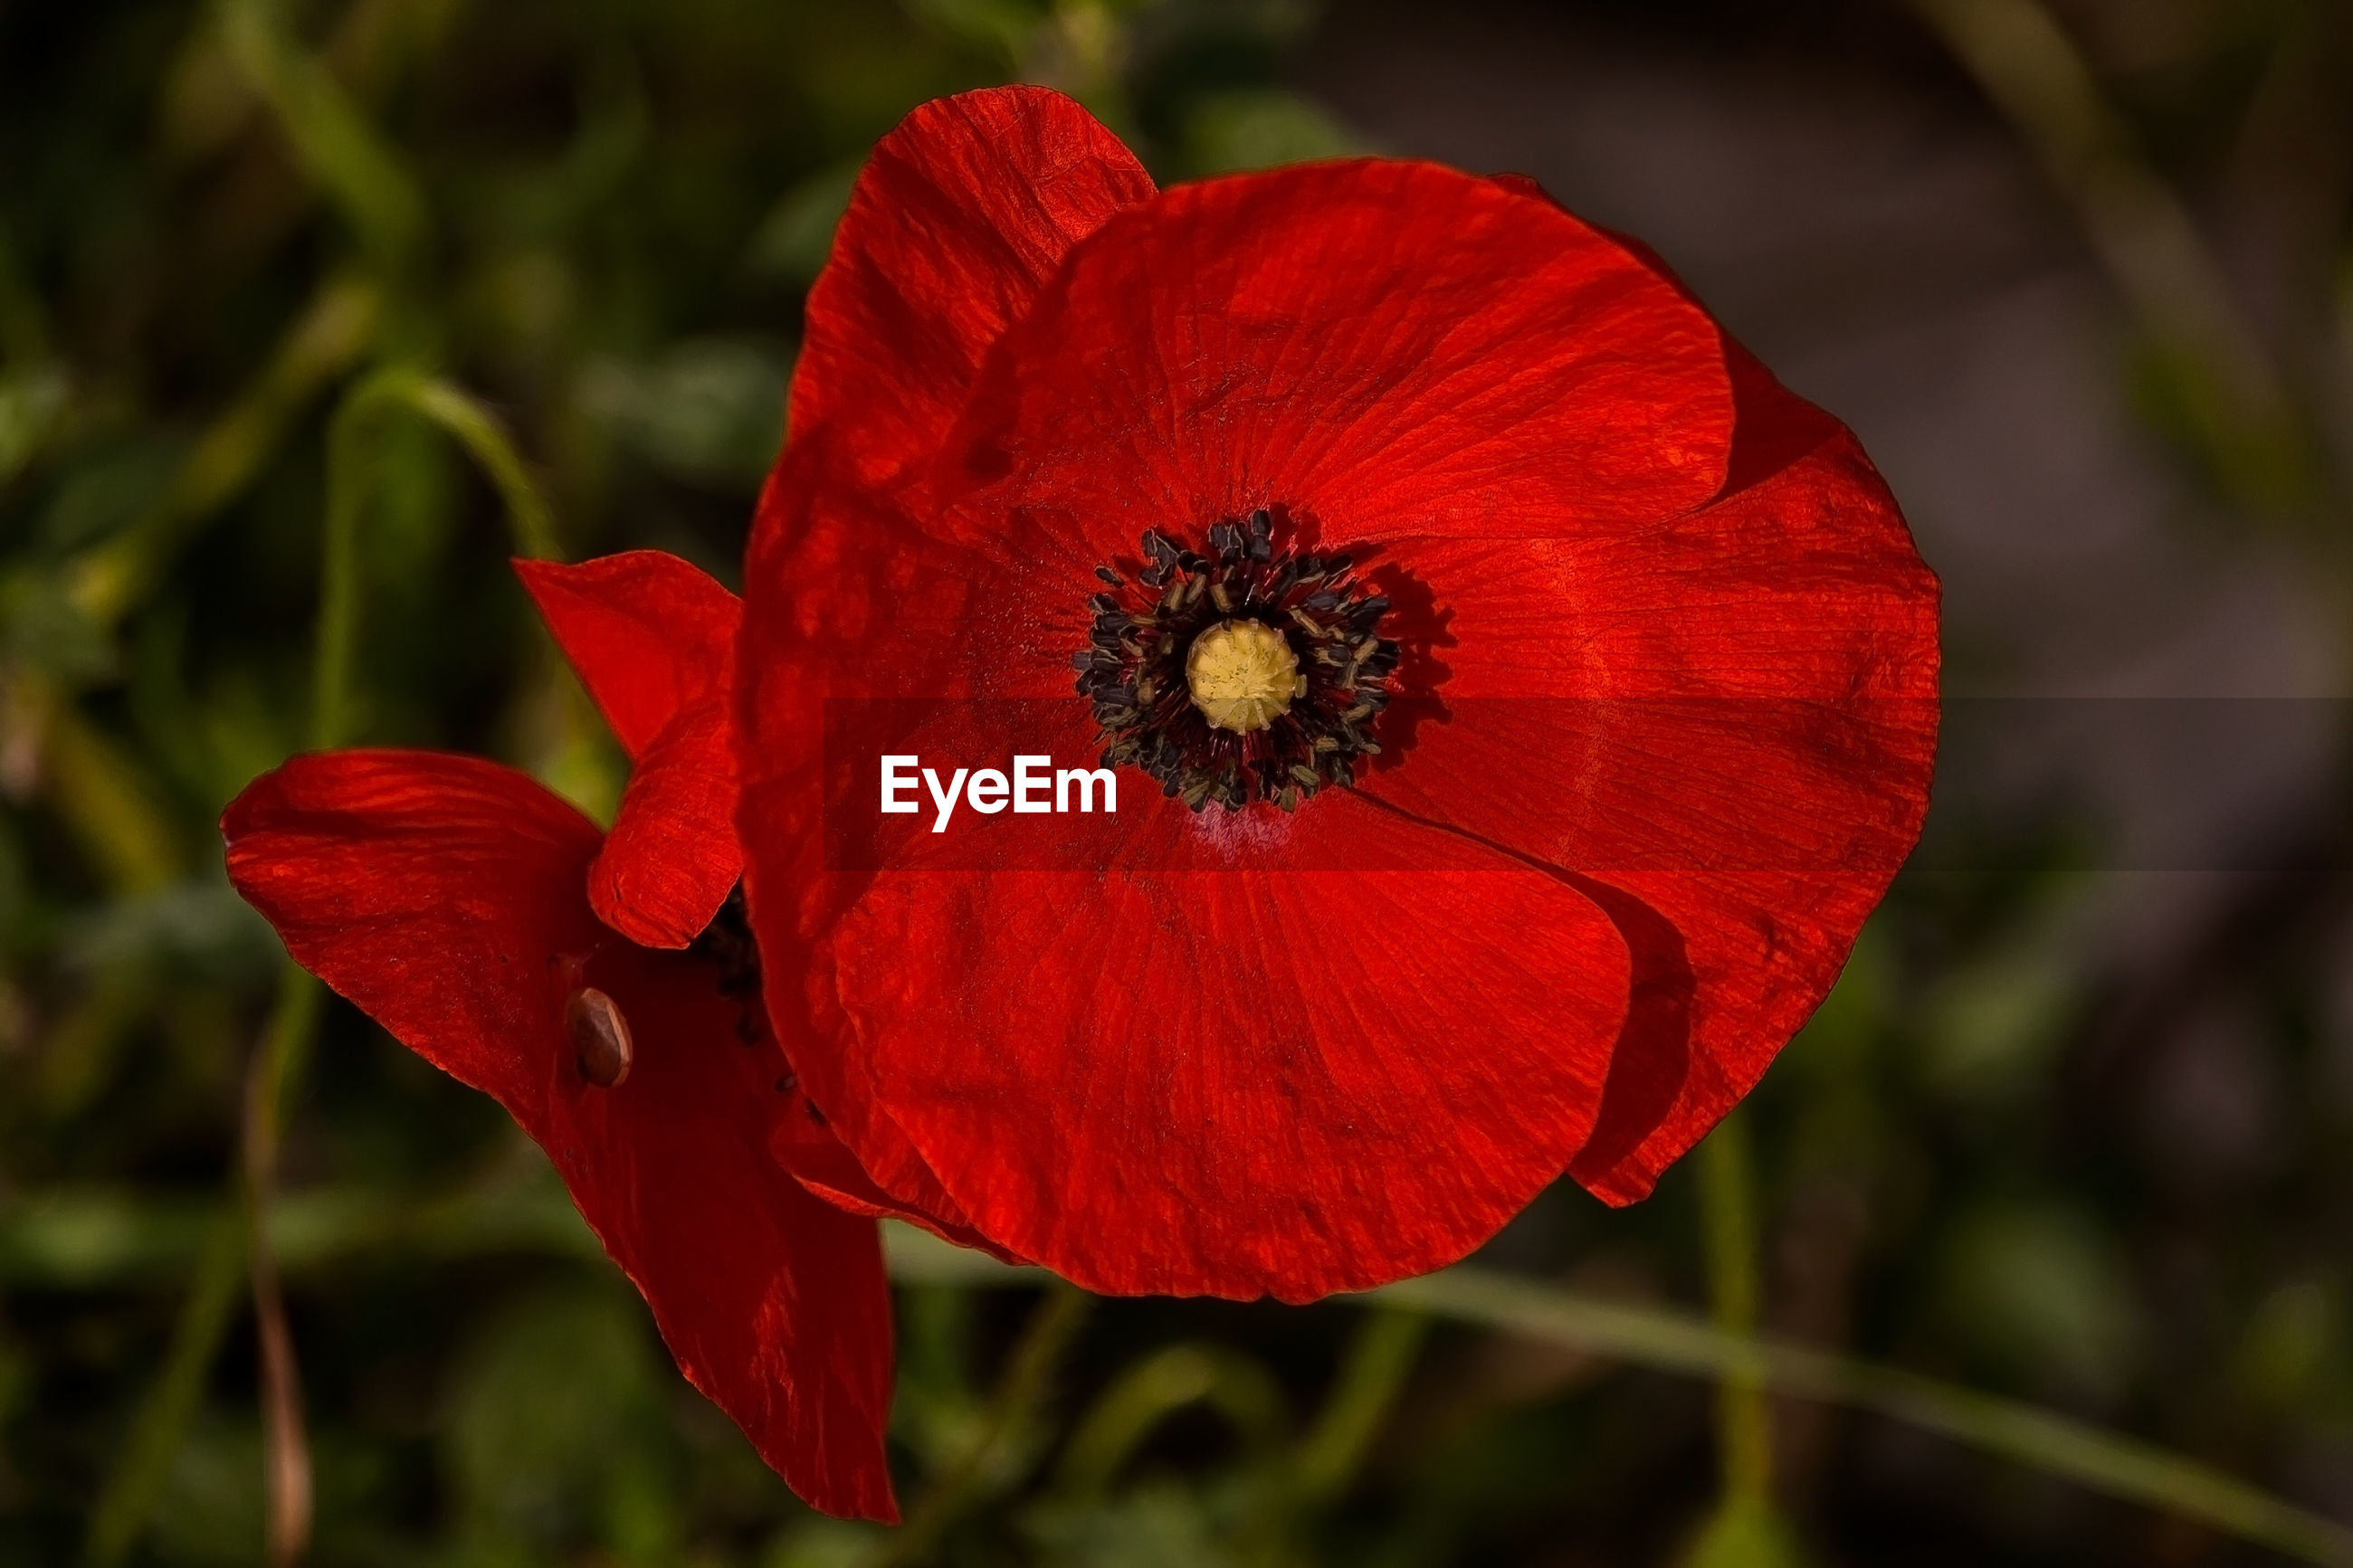 CLOSE-UP OF RED POPPY FLOWER AGAINST BLURRED BACKGROUND